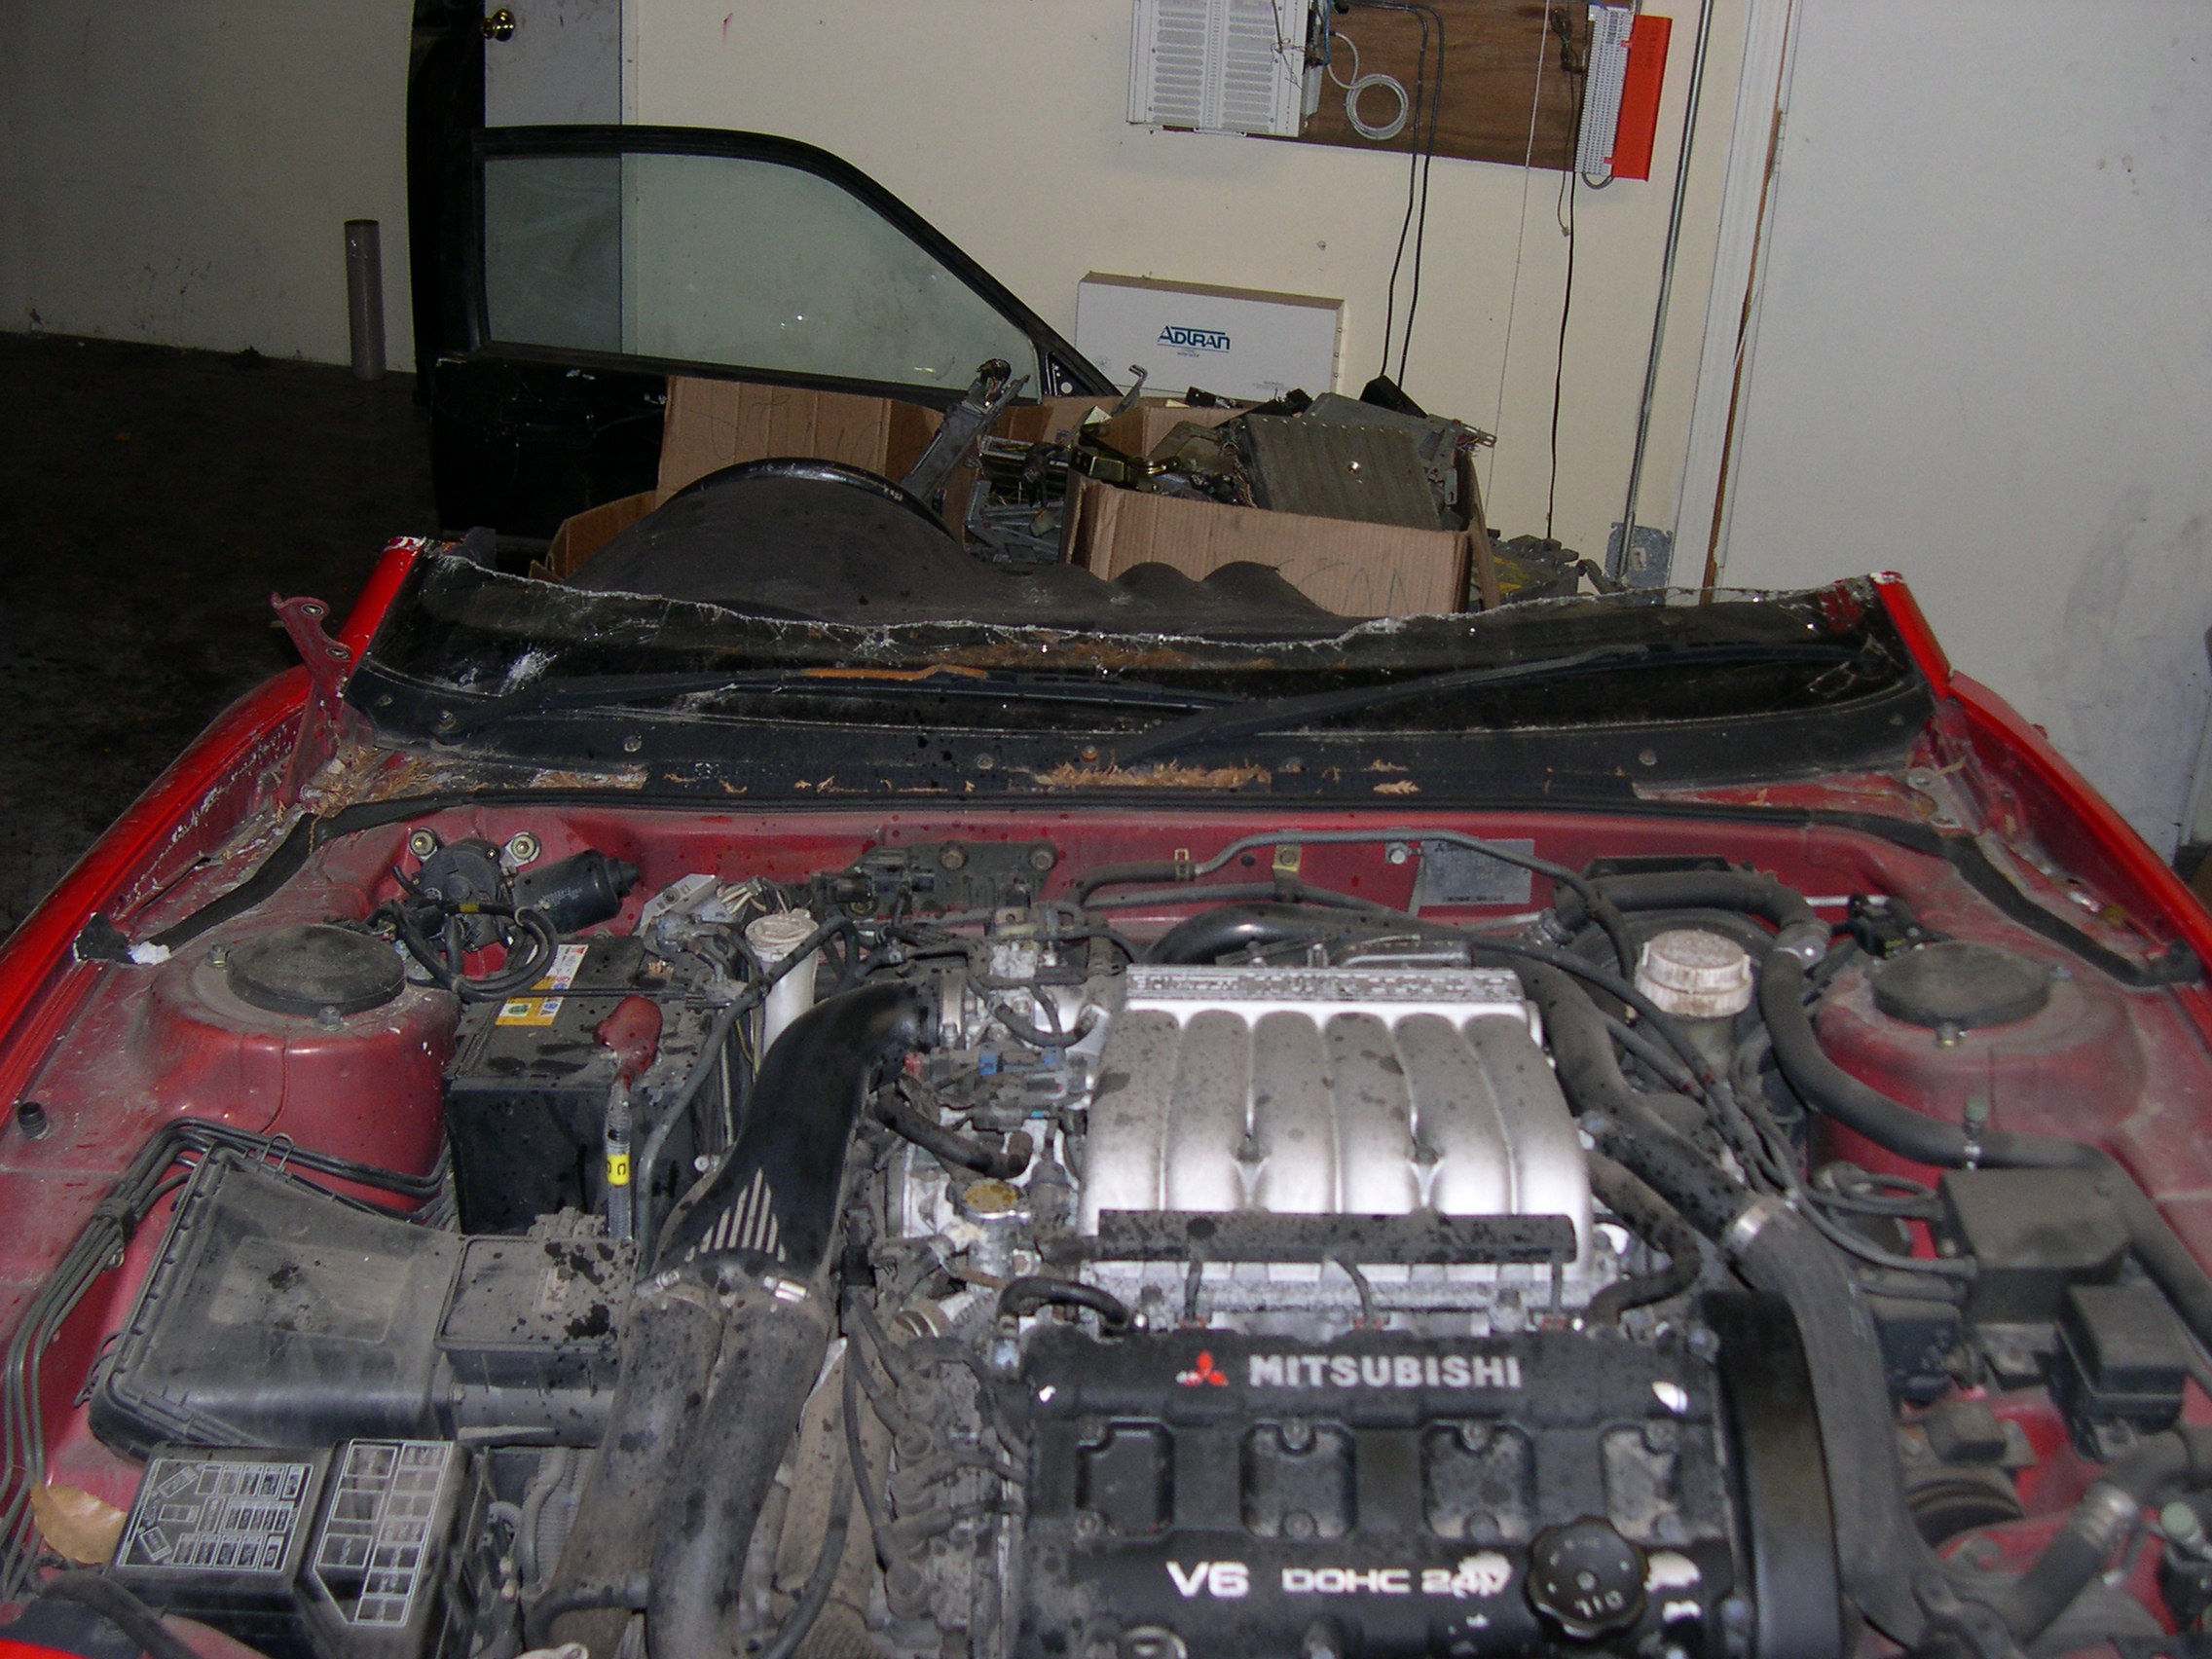 R&T Motor Sports - JDM, JDM Engines, JDM Engine, JDM Motors, JDM Motor